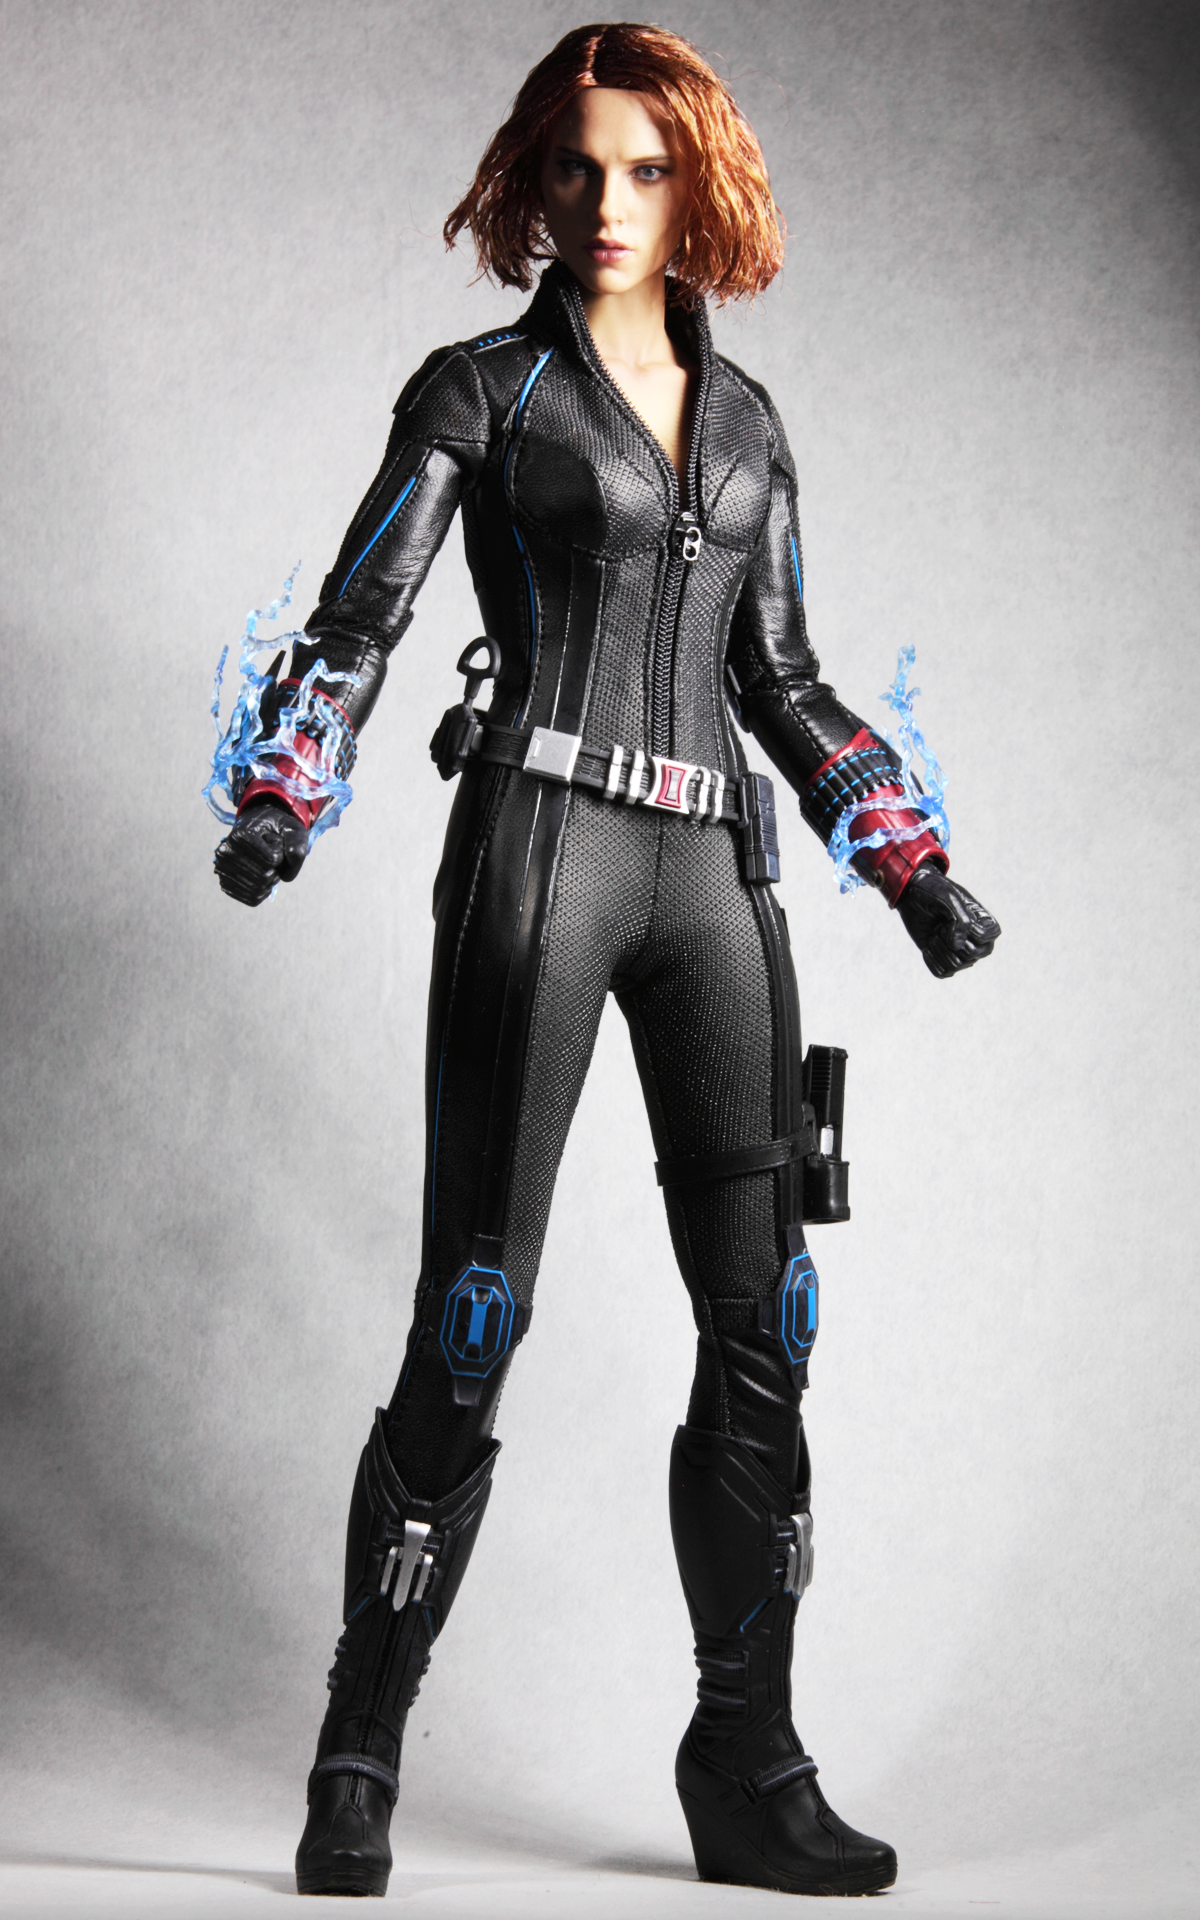 hottoys-avengers-age-of-ultron-black-widow-picture04